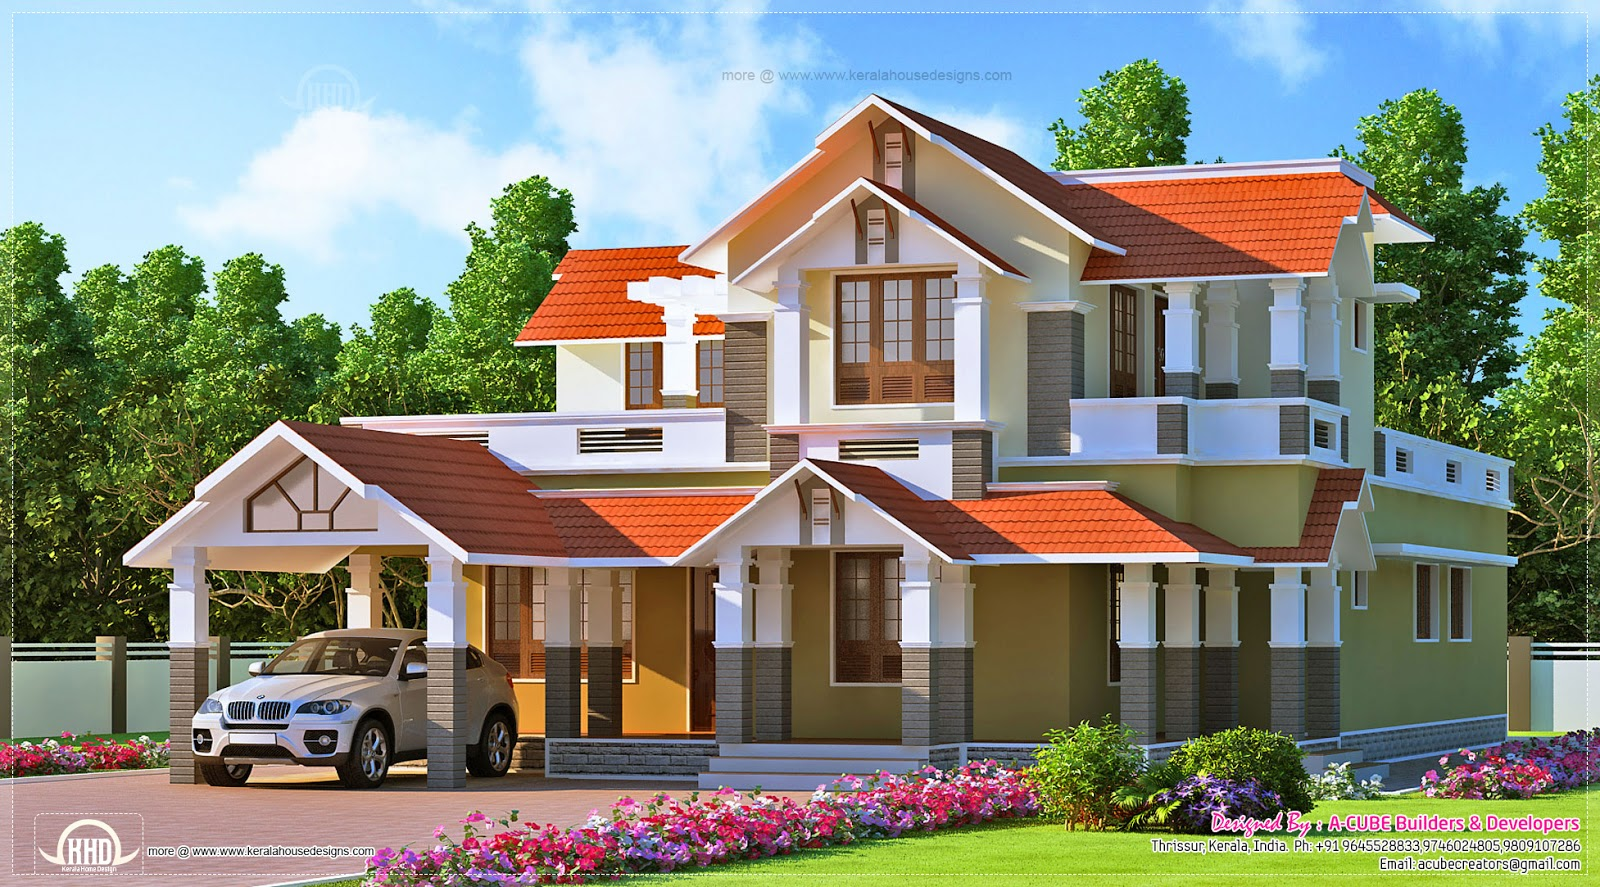 Kerala style dream home design in 2900 house Home design dream house